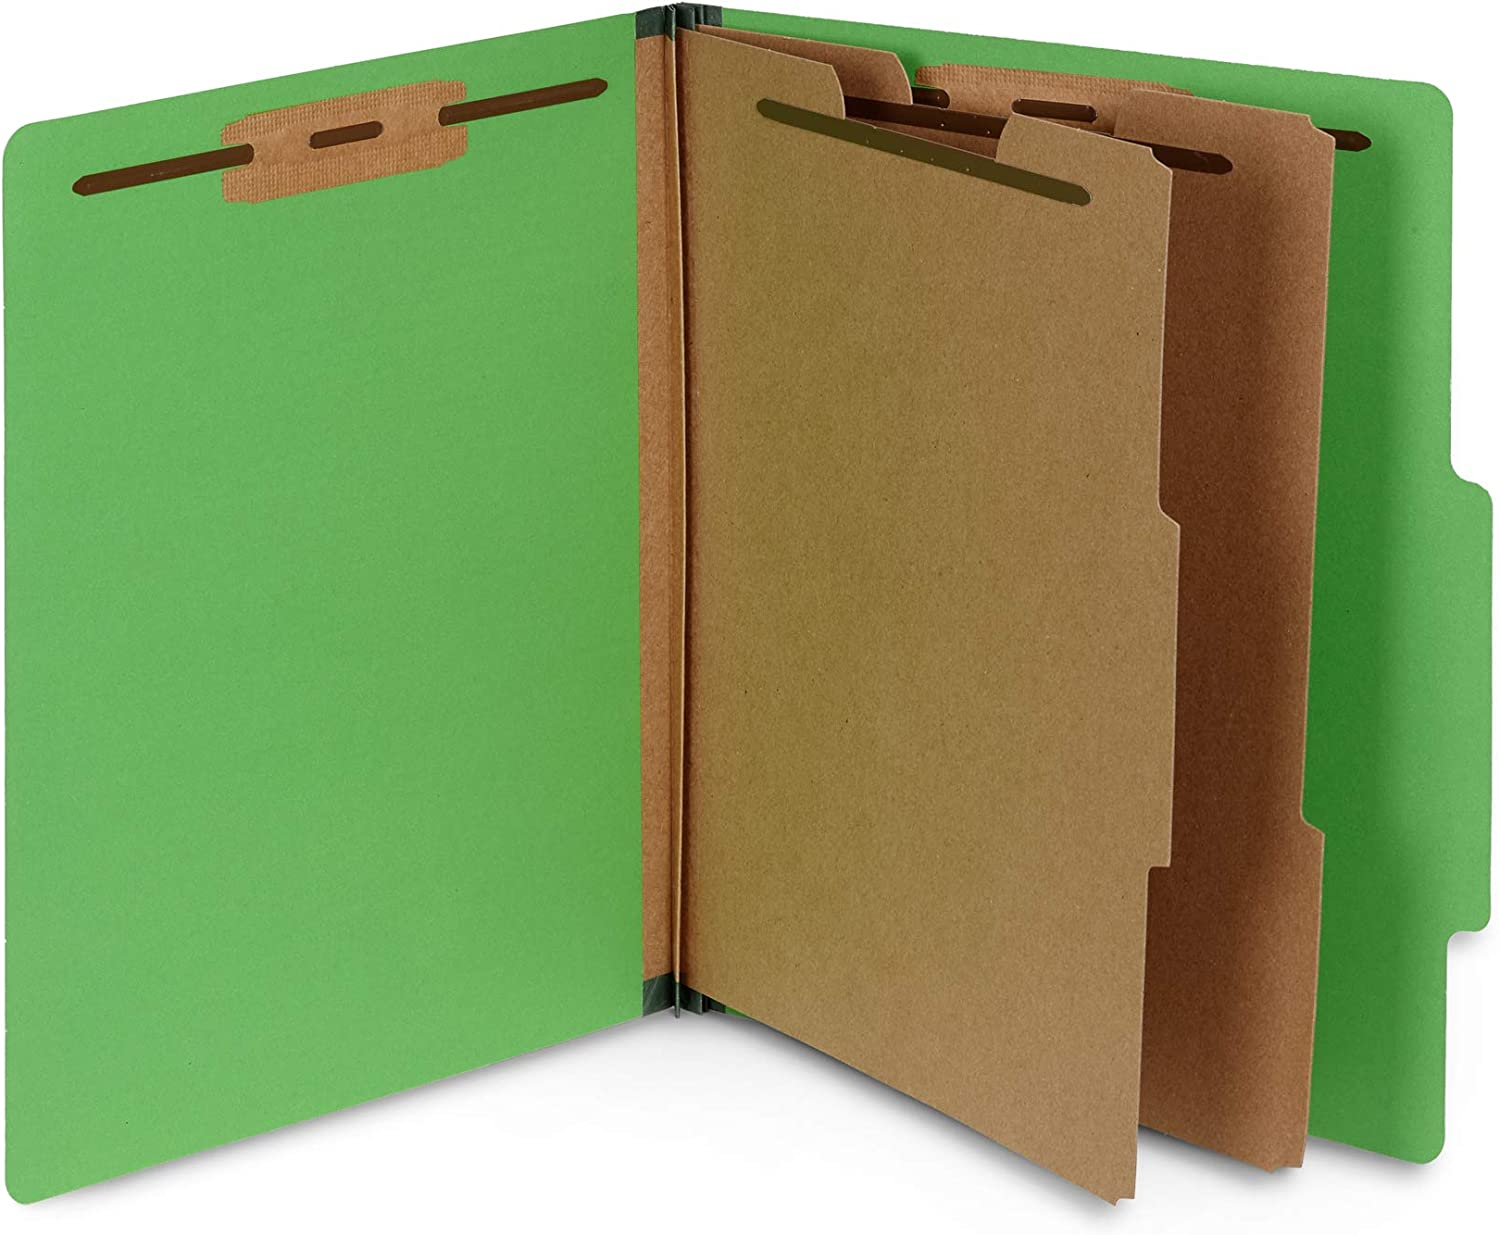 10 Green Classification Folders, 2 Divider, 2 Inch Tyvek expansions, Durable 2 Prongs Designed to Organize Standard Medical Files, Law Client Files, Office Reports, Letter Size, Green, 10 Pack